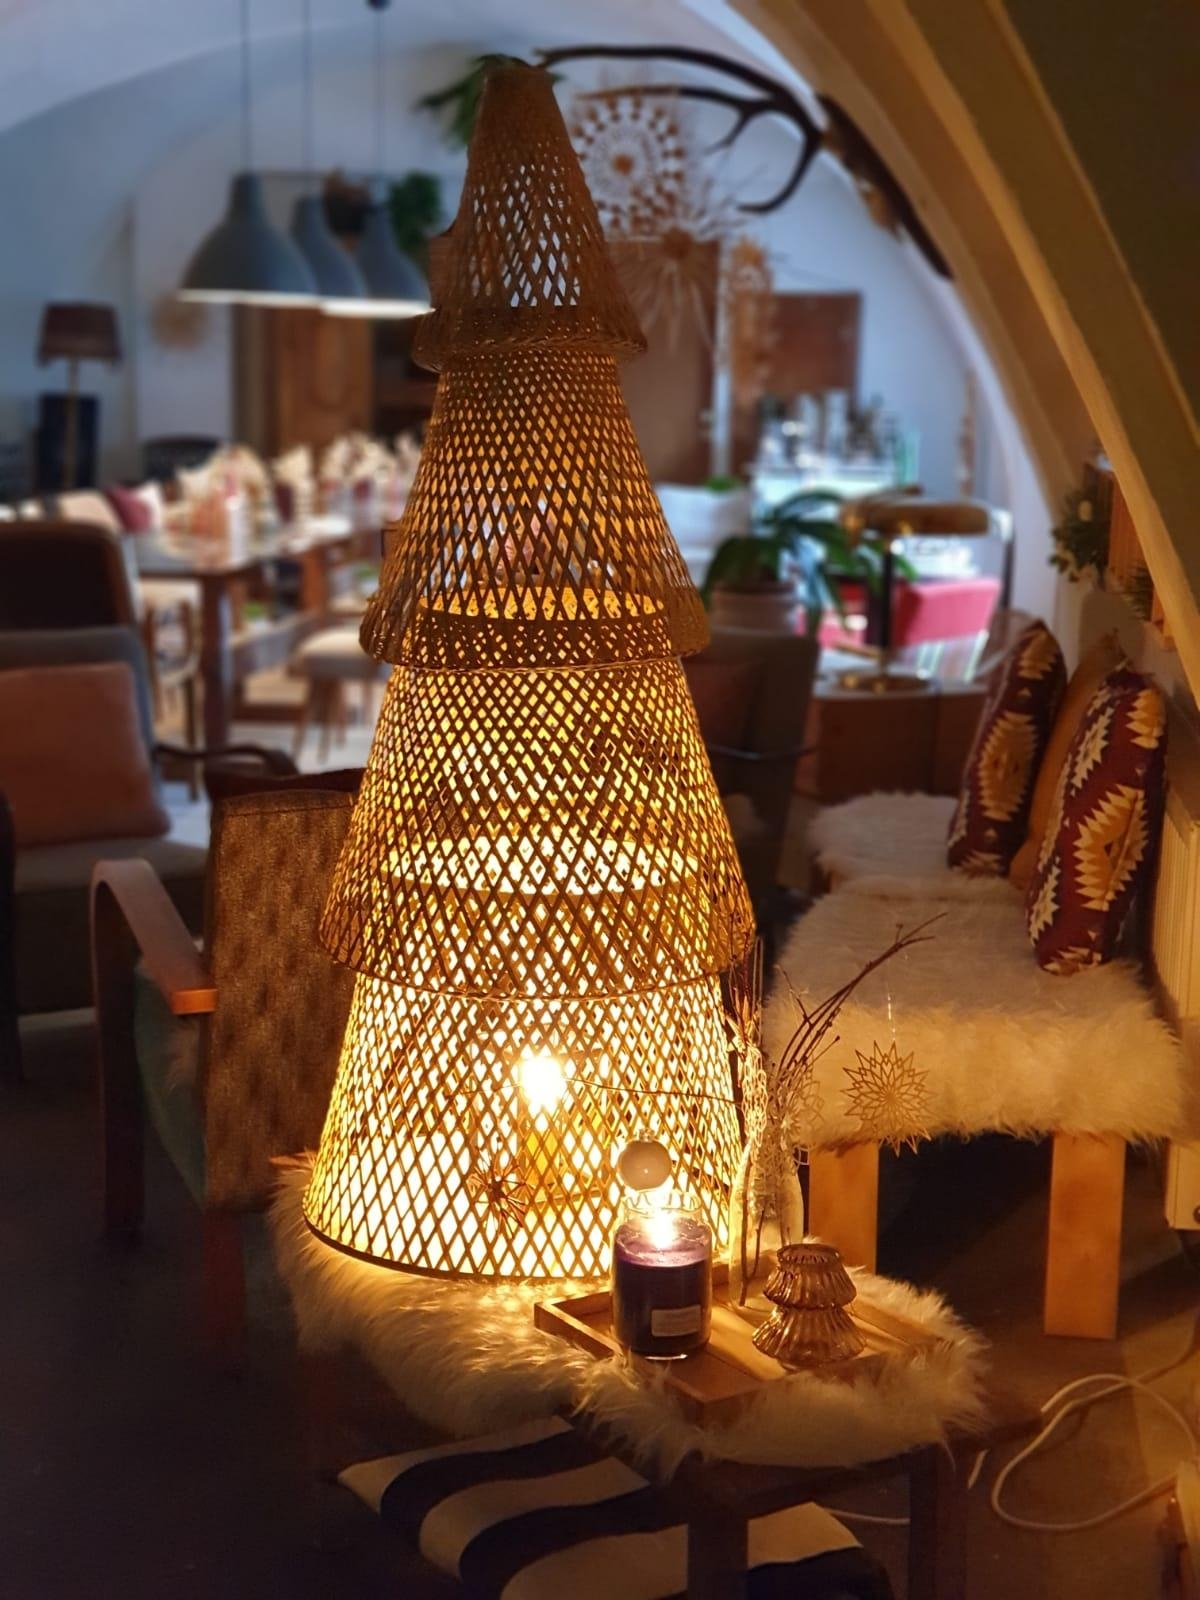 Cristmasmood #christmas #cozyhome #christmastree #geflecht #warmandsoft #couchstyle #homestory #esweihnachtetsehr